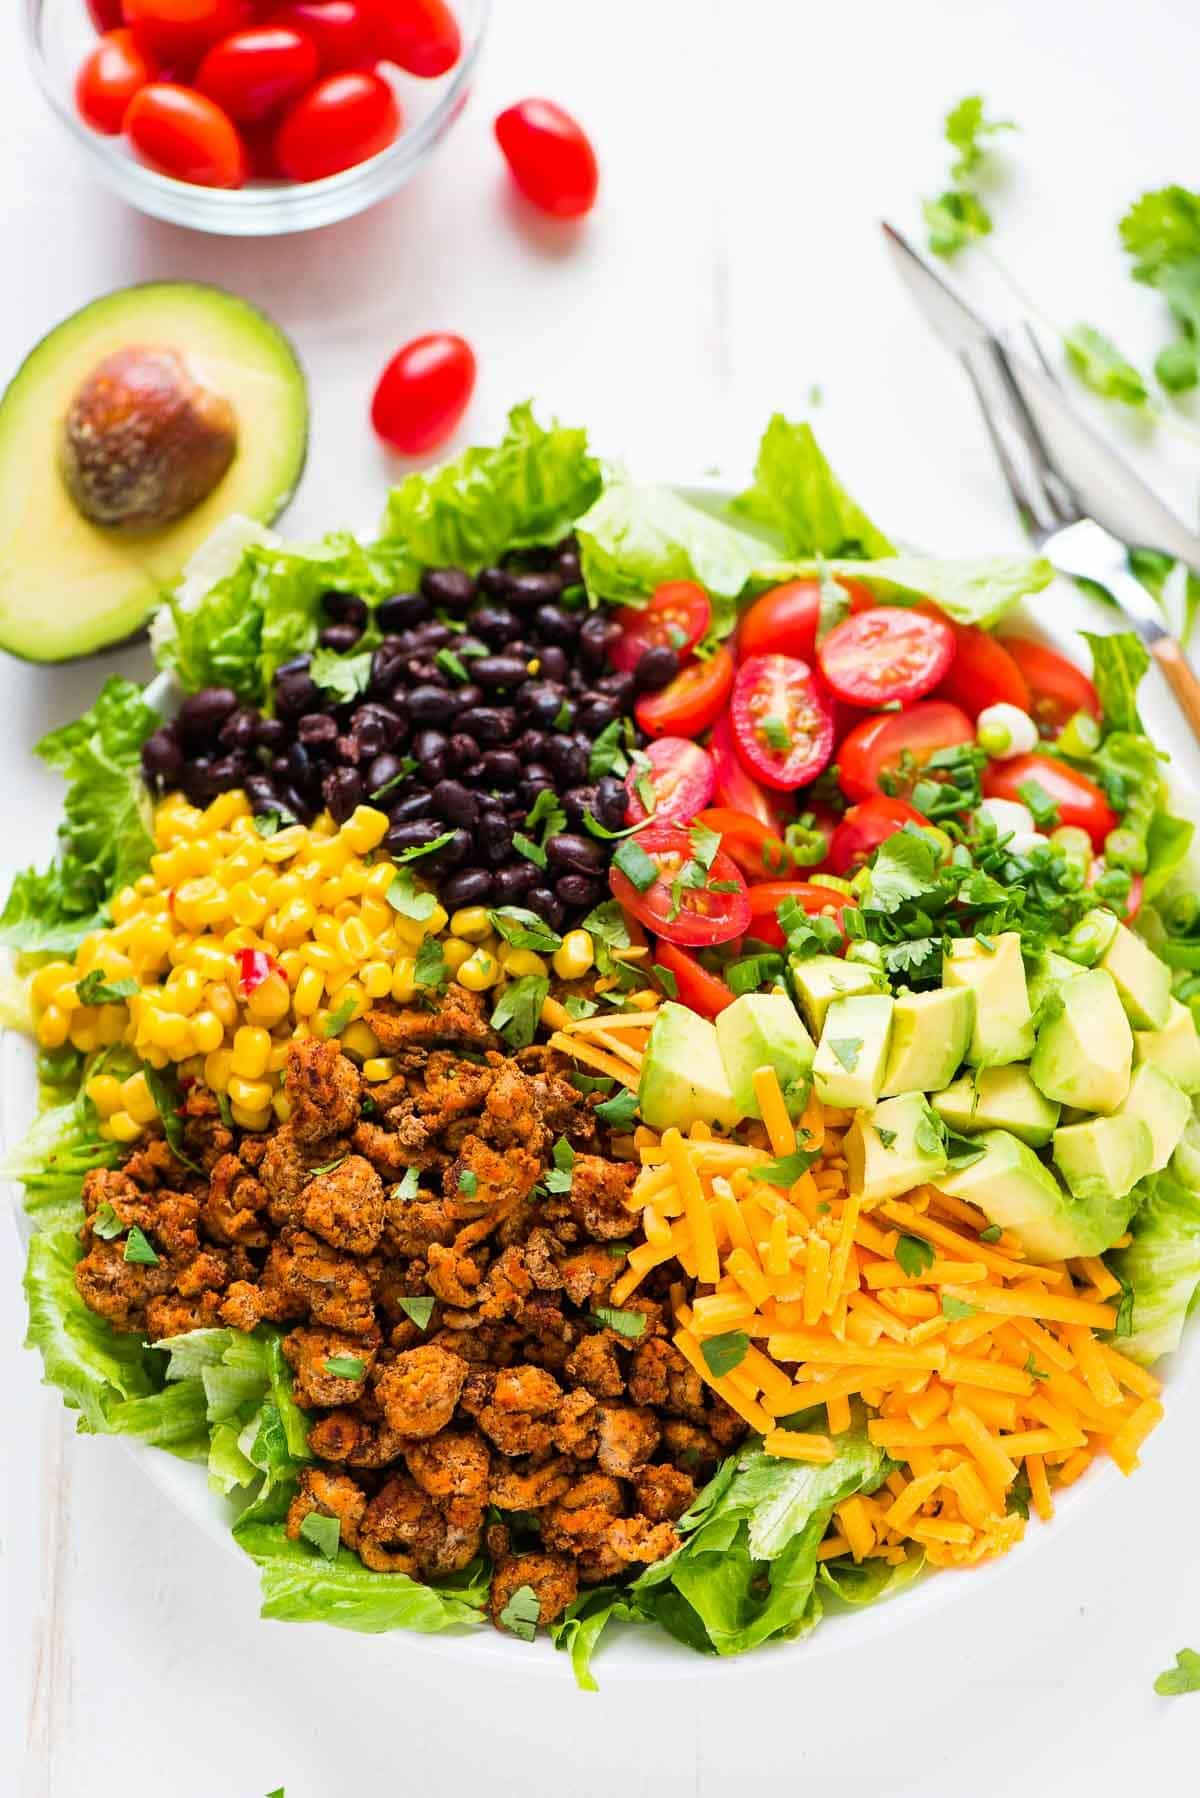 Ingredients for making skinny taco salad like ground turkey, tomatoes, avocado, black beans, corn, and cheese